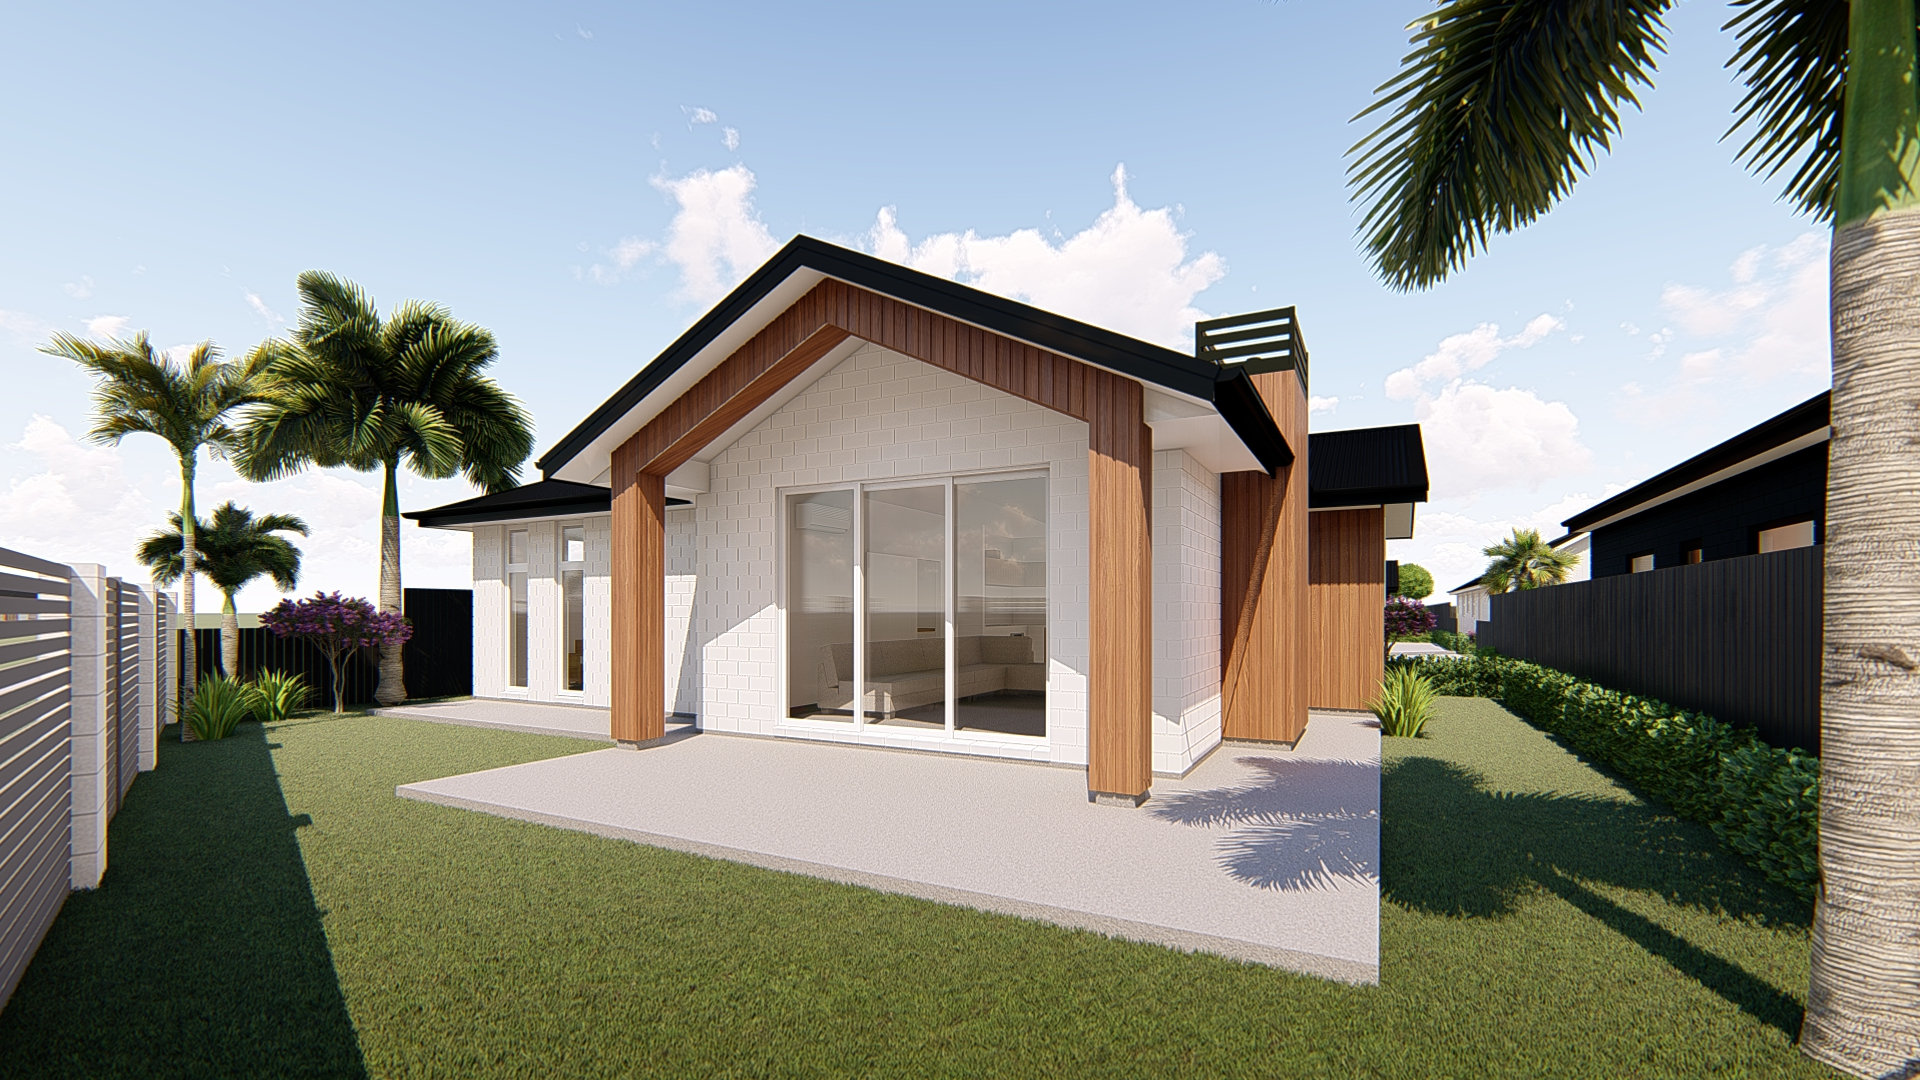 Lot 2903 Palm Springs, Papamoa (Showhome Specification)